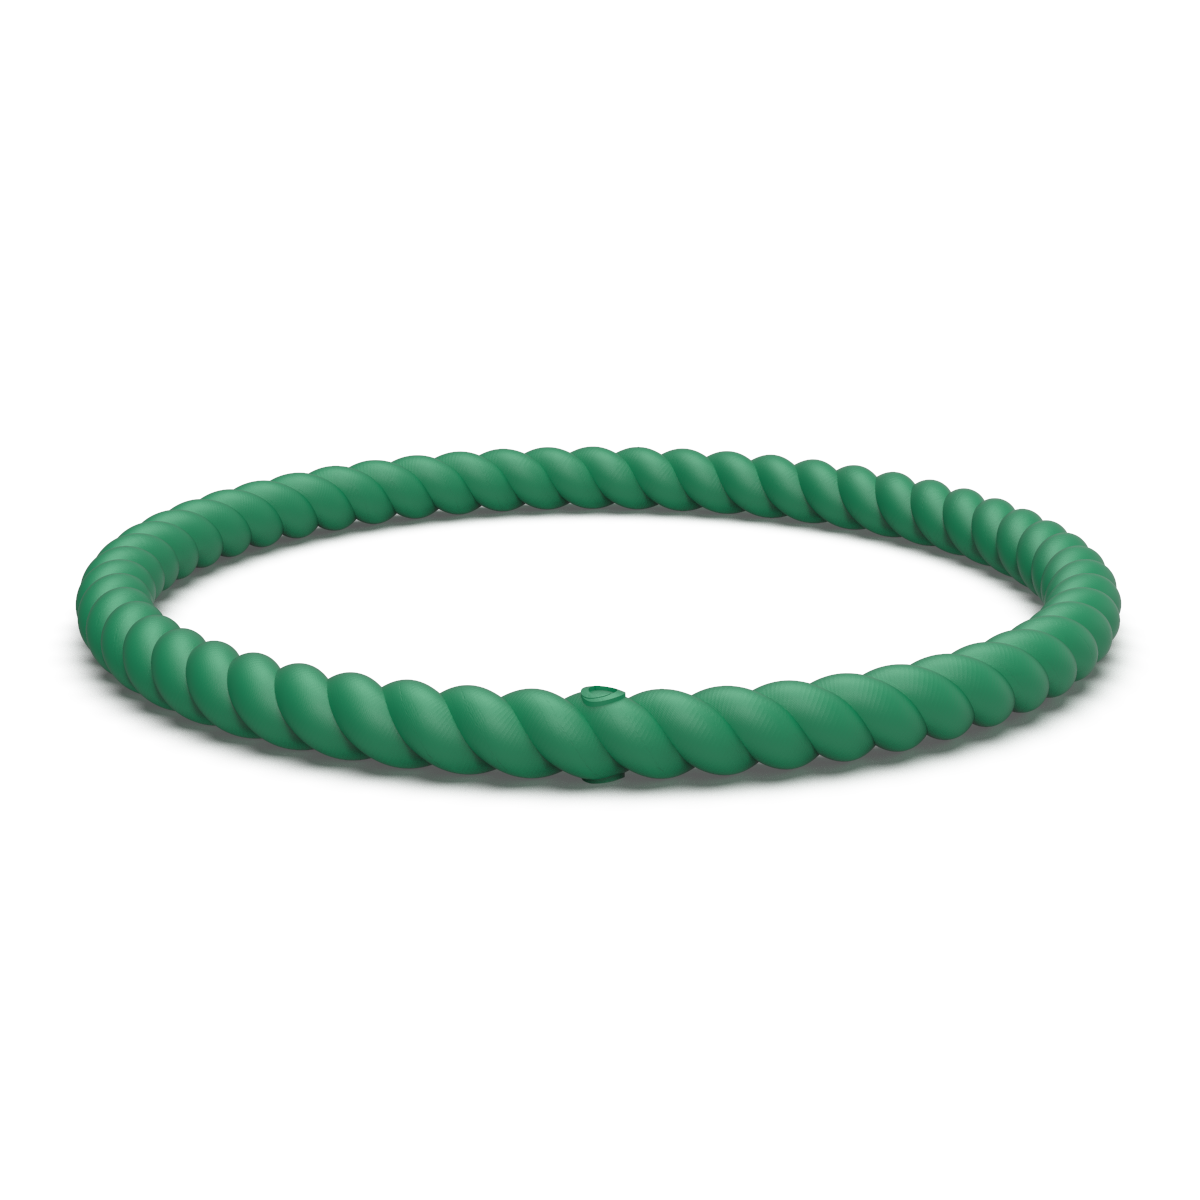 Braided Stackable Silicone Bracelet Daylily